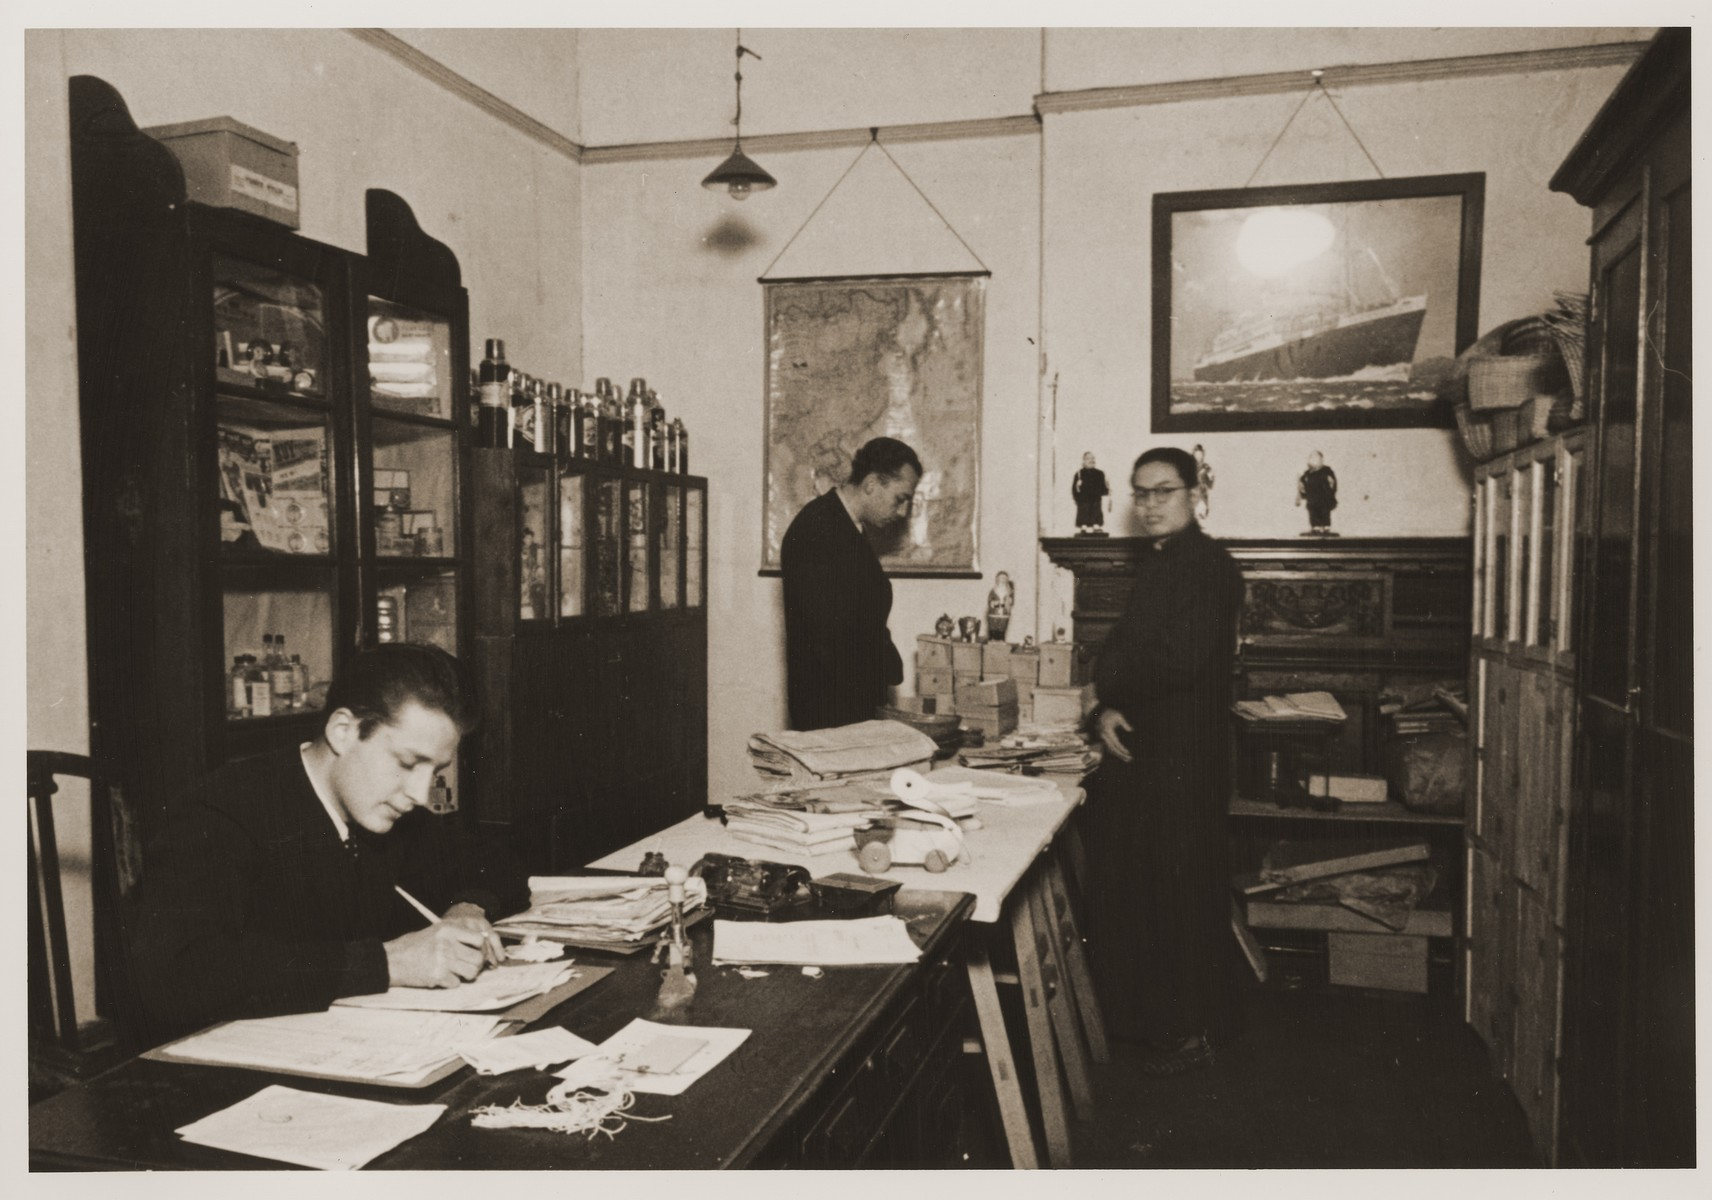 Staff members at work in the offices of the International Committee for European Immigrants in China.  Among those pictured is Eric Goldstaub (seated on the left).